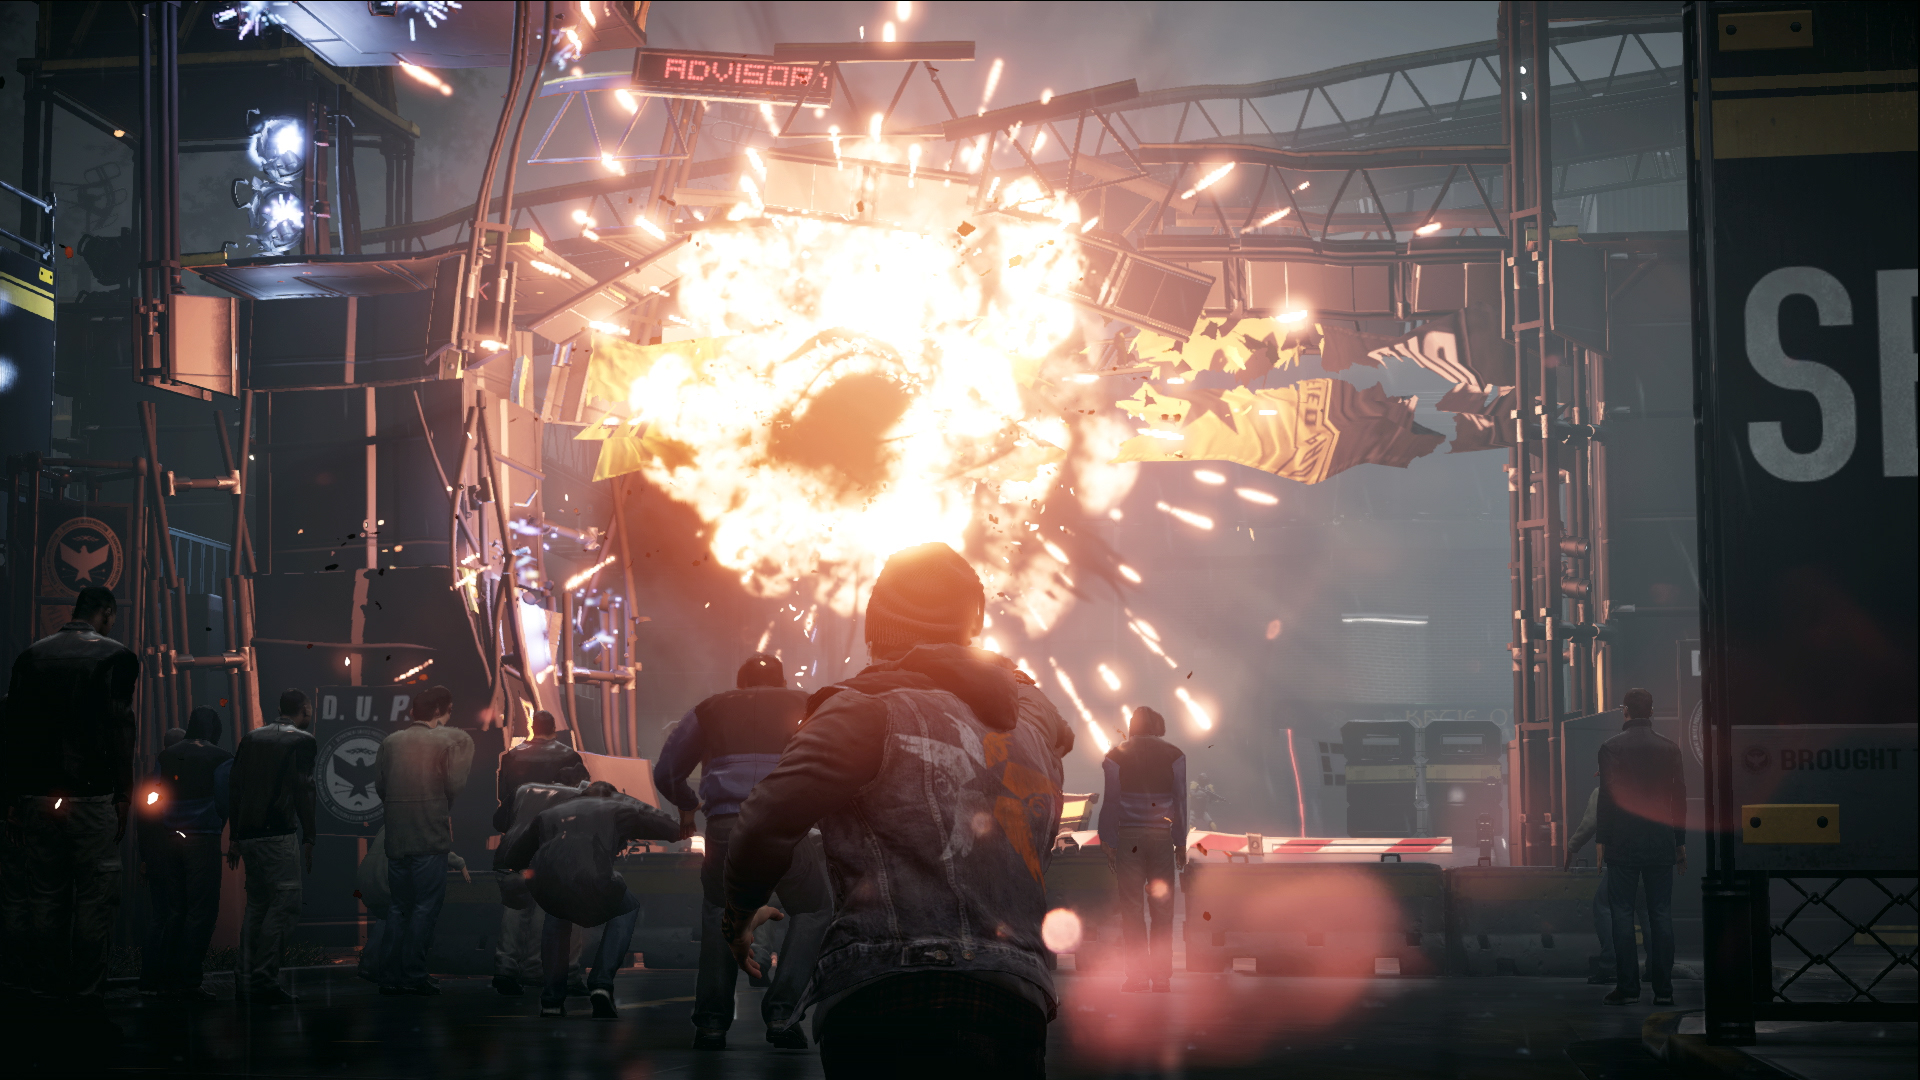 Infamous: Second Son PS4 Screenshot Showing Destruction